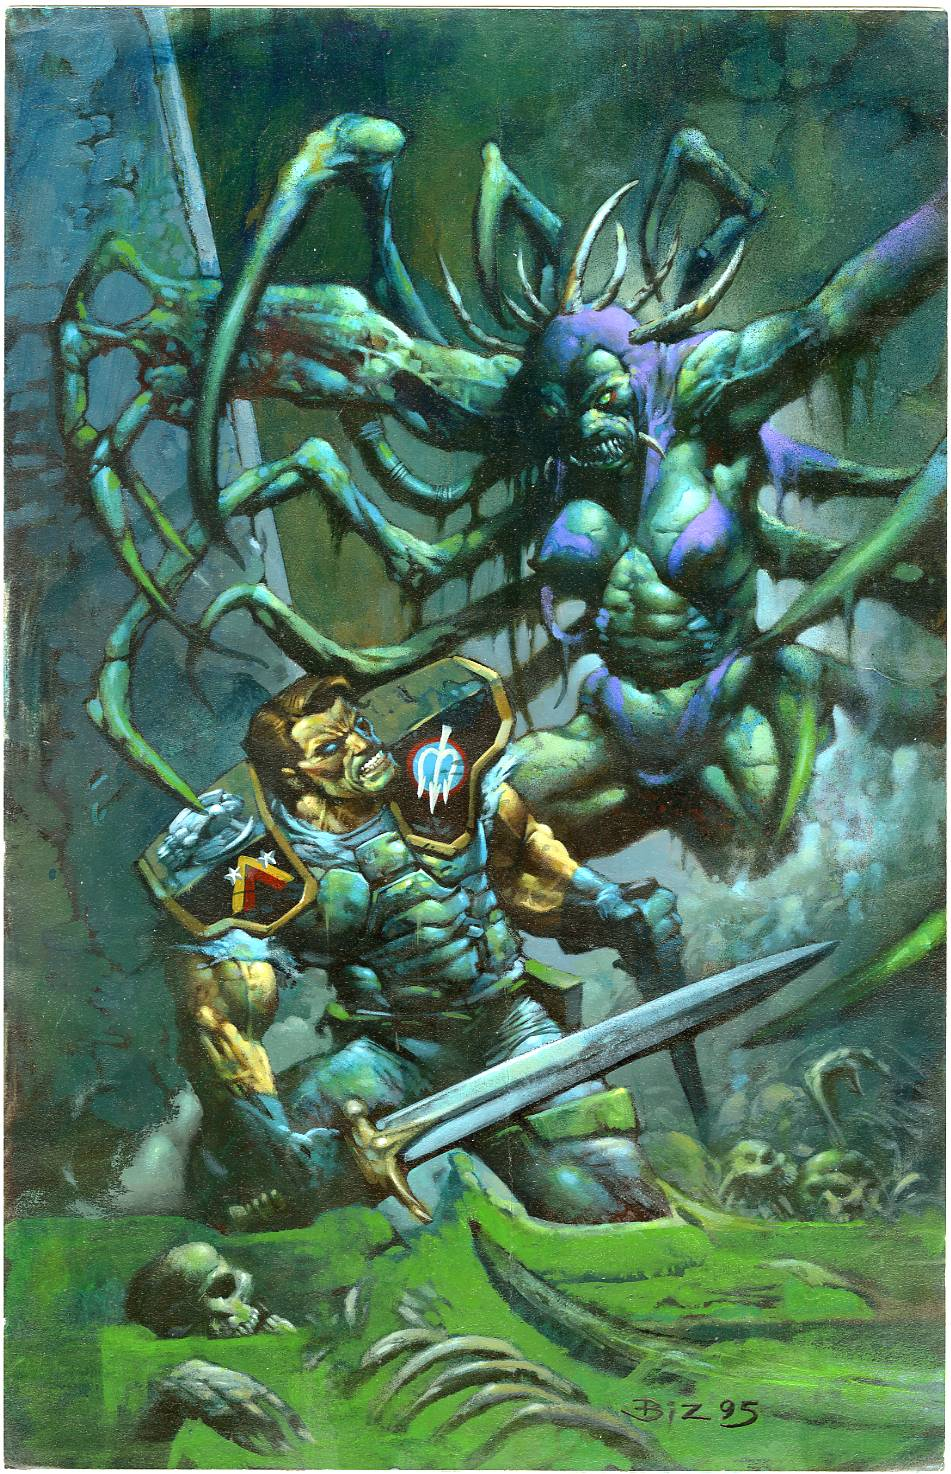 Question: What kind of paint Simon Bisley uses in those paintings?